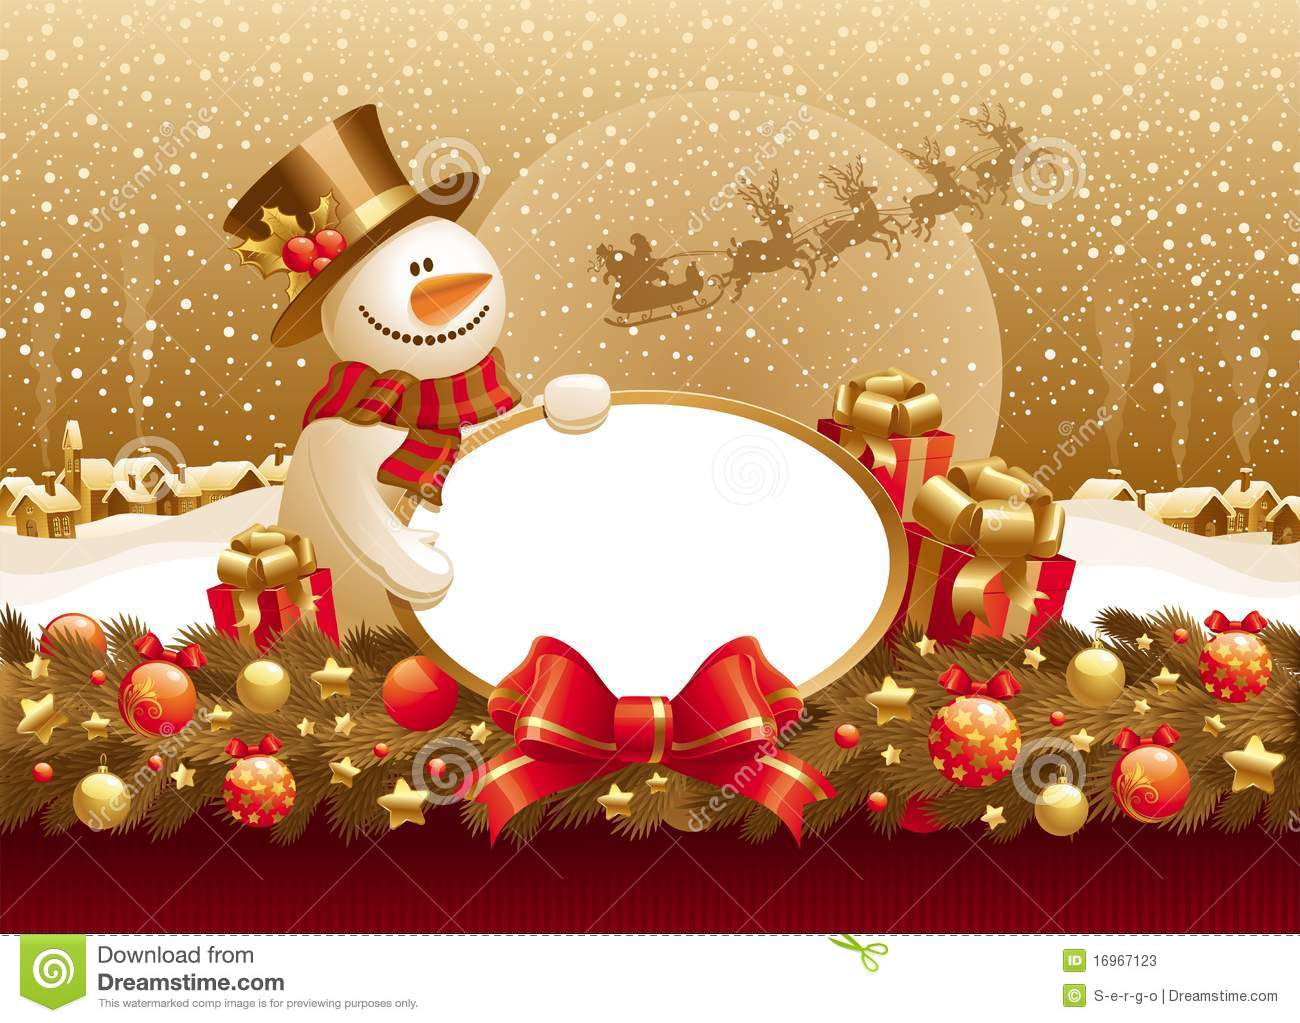 Christmas Illustration With Snowman, Gift & Frame Stock